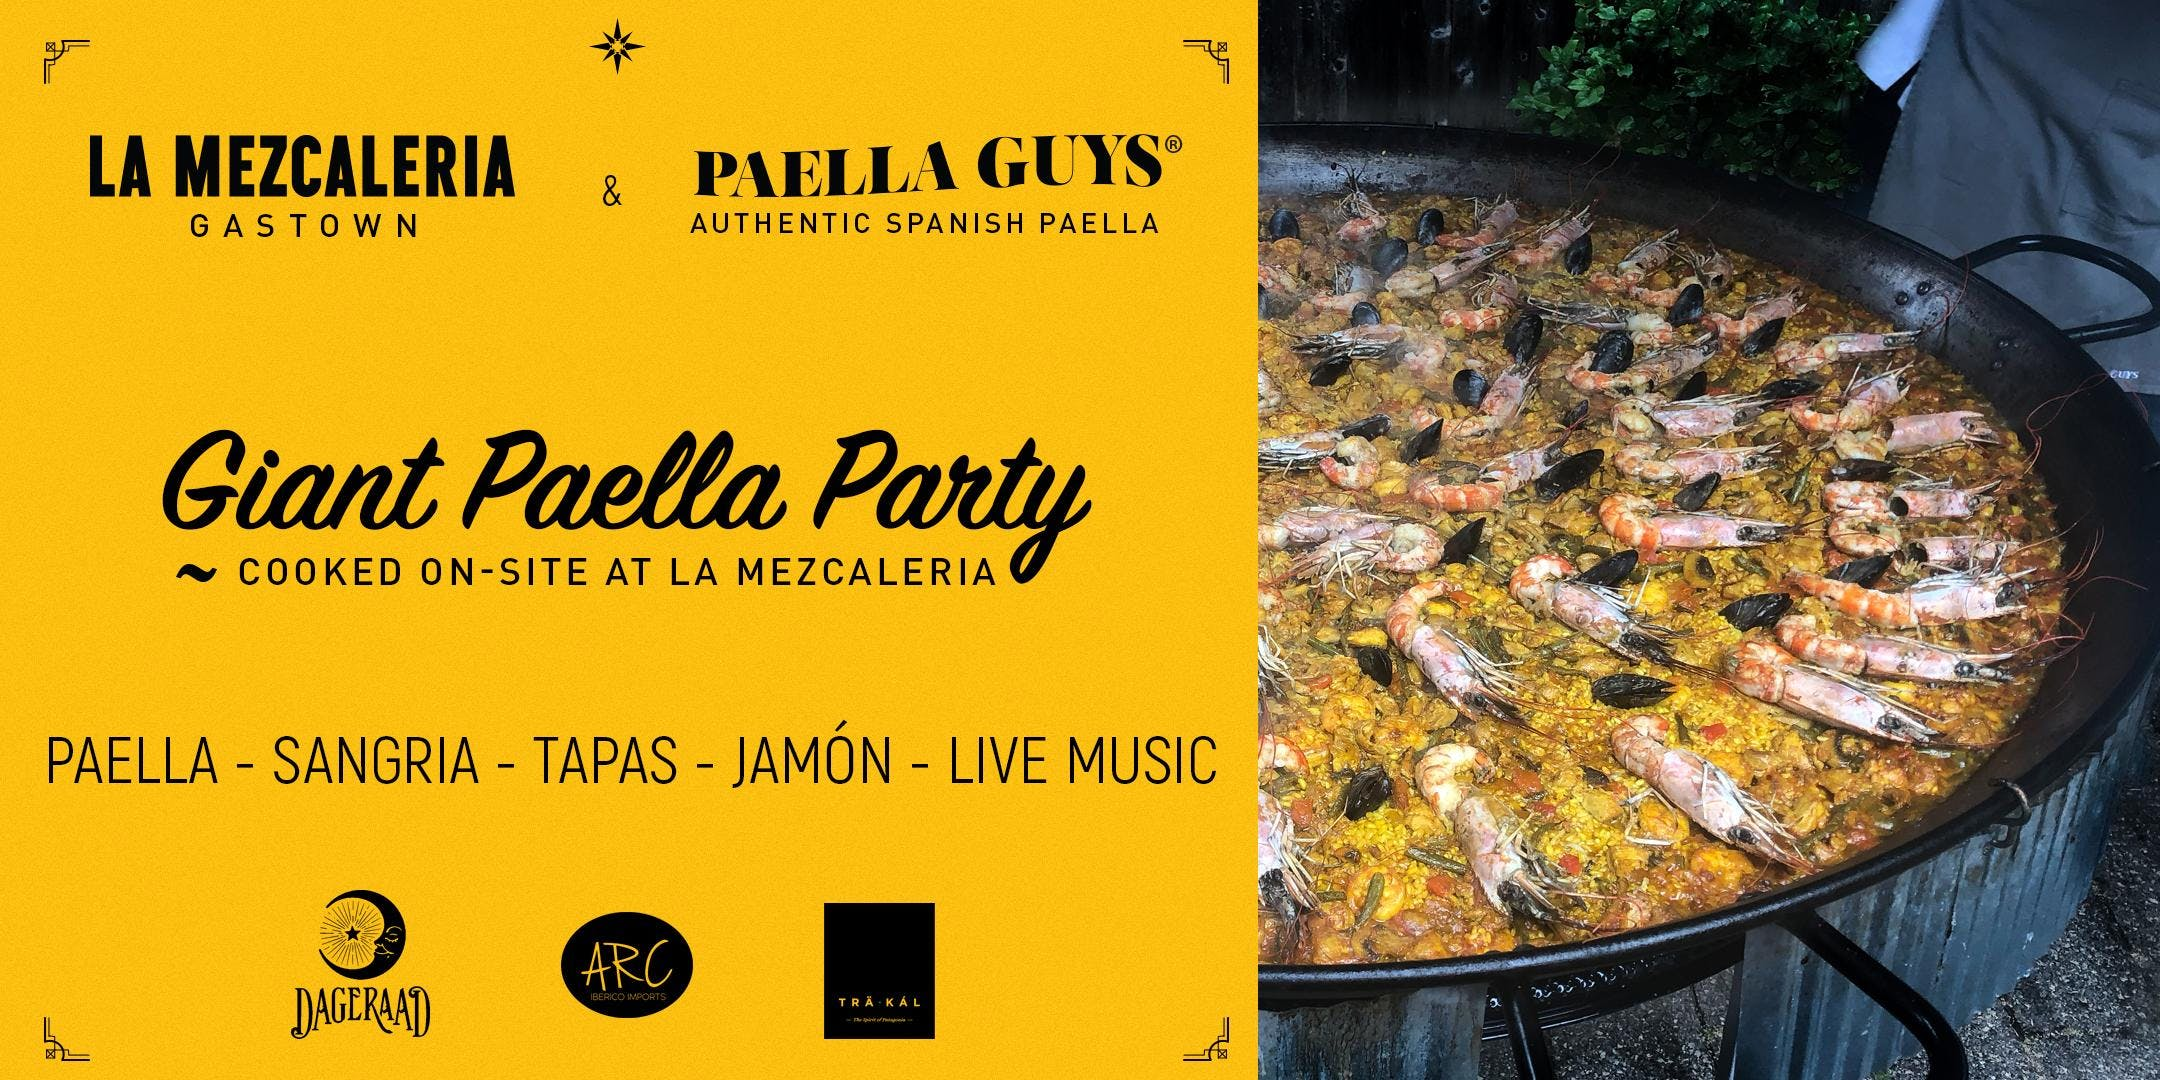 Giant Paella Party